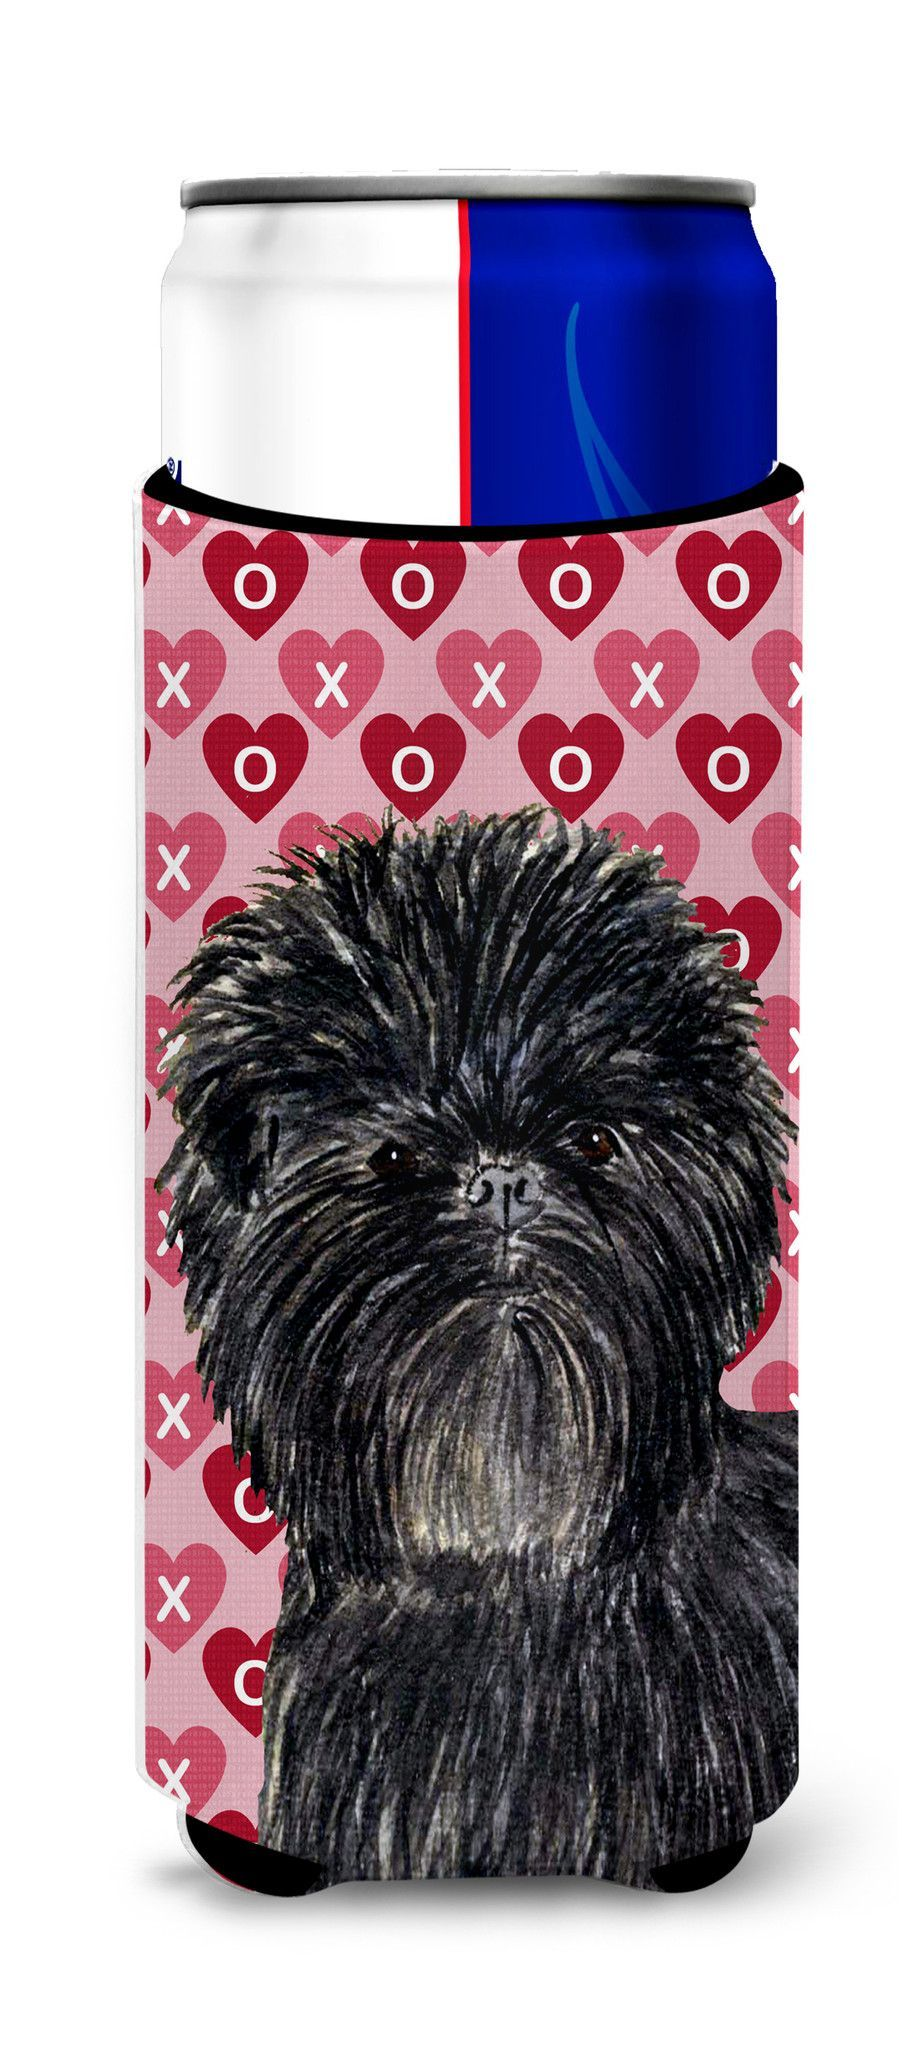 Affenpinscher Hearts Love and Valentine's Day Portrait Ultra Beverage Insulators for slim cans SS4511MUK